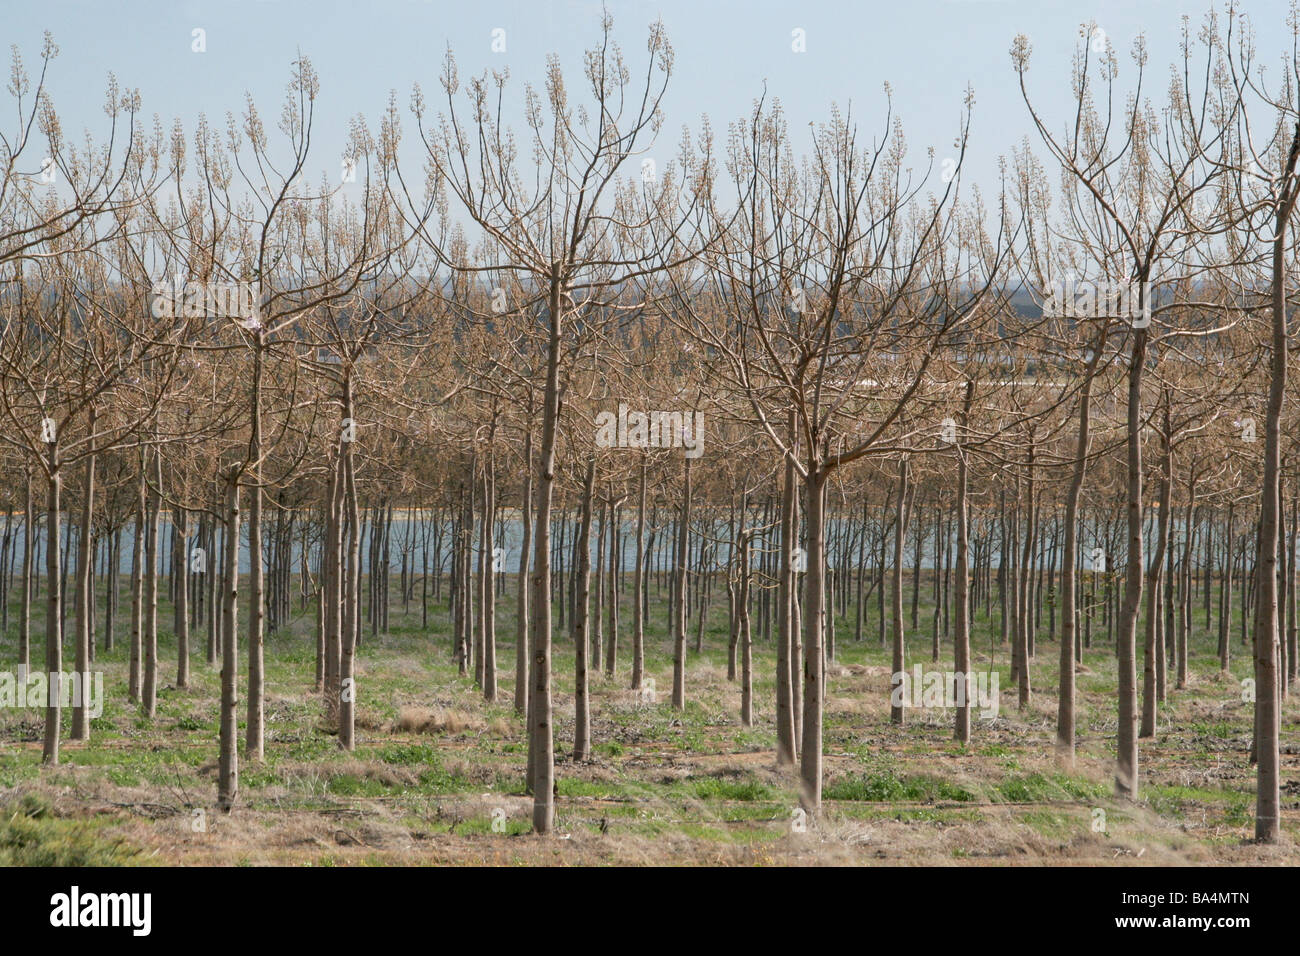 Rows of cultivated trees in Western Australia - Stock Image